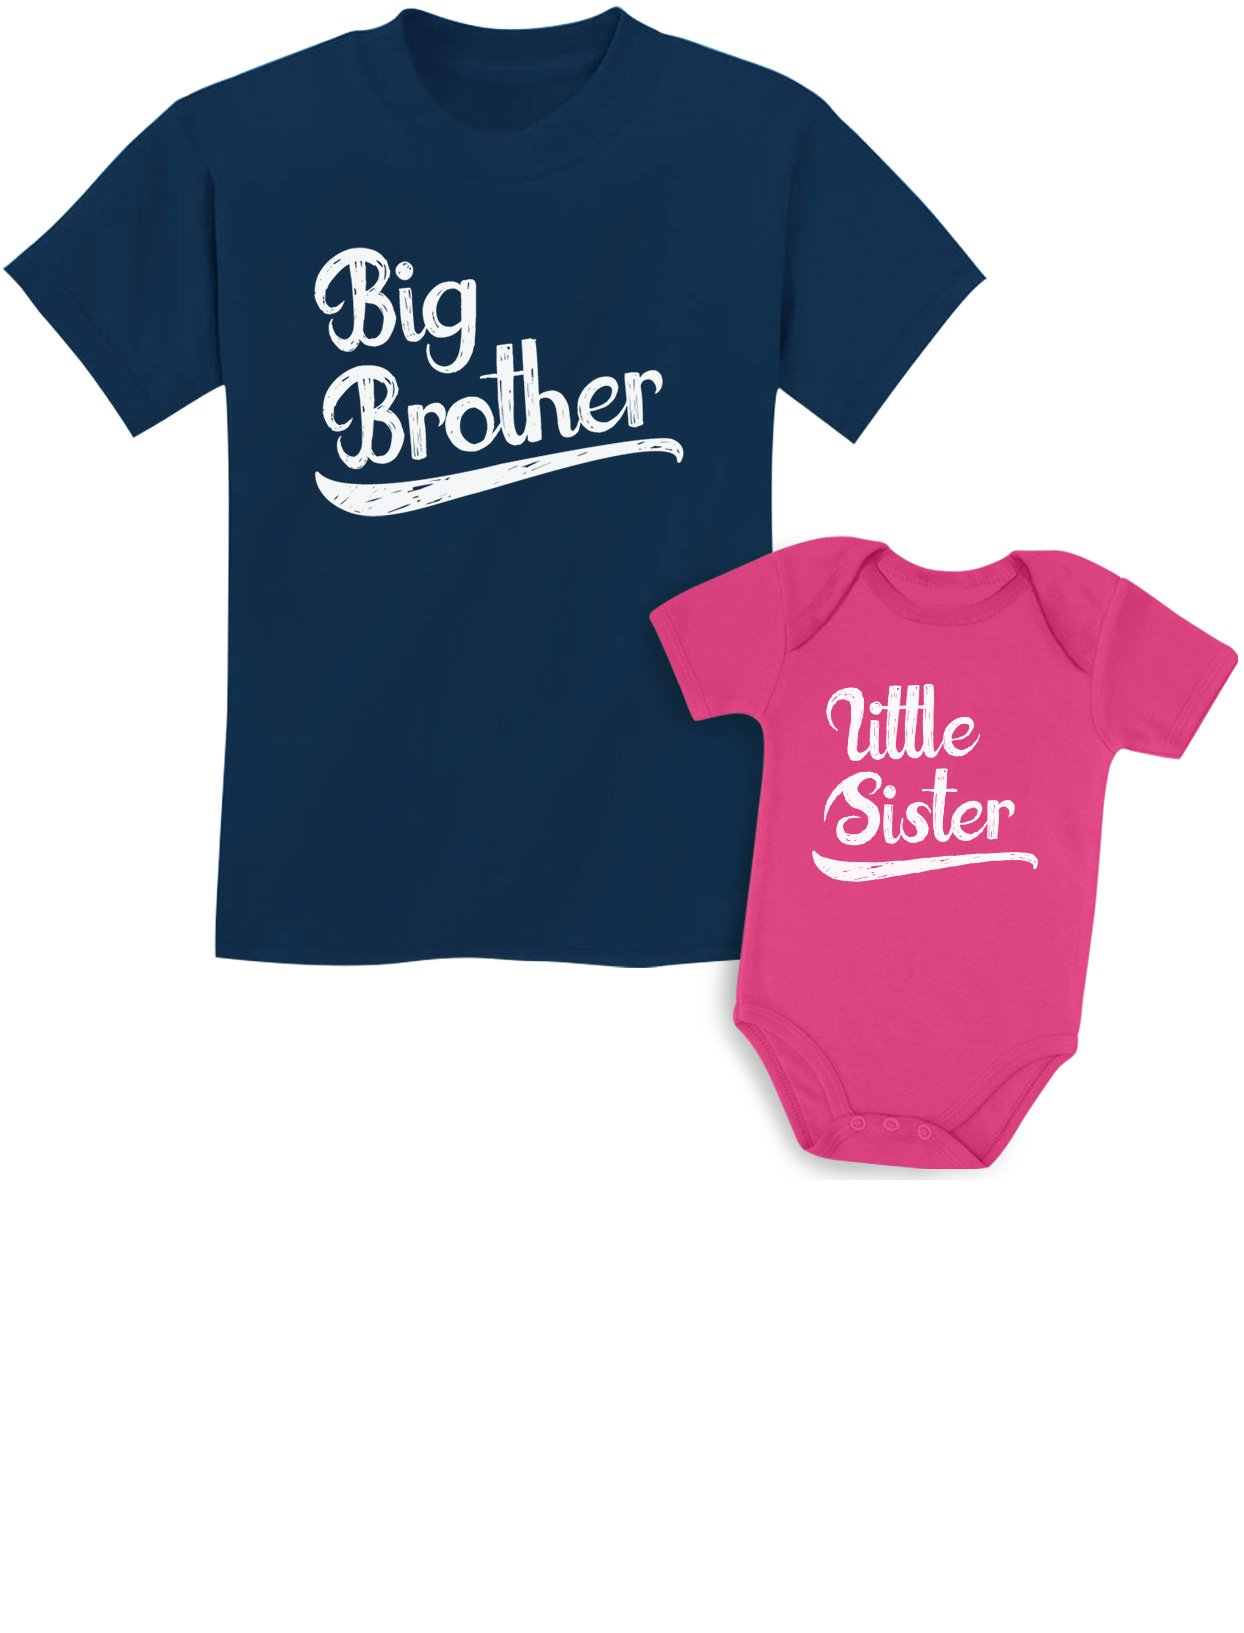 Sibling Shirts Set for Brothers and Sisters Boys & Girls Gift Set Kids Shirt Navy/Baby Wow Pink Kids Shirt 4T / Baby Newborn by Tstars